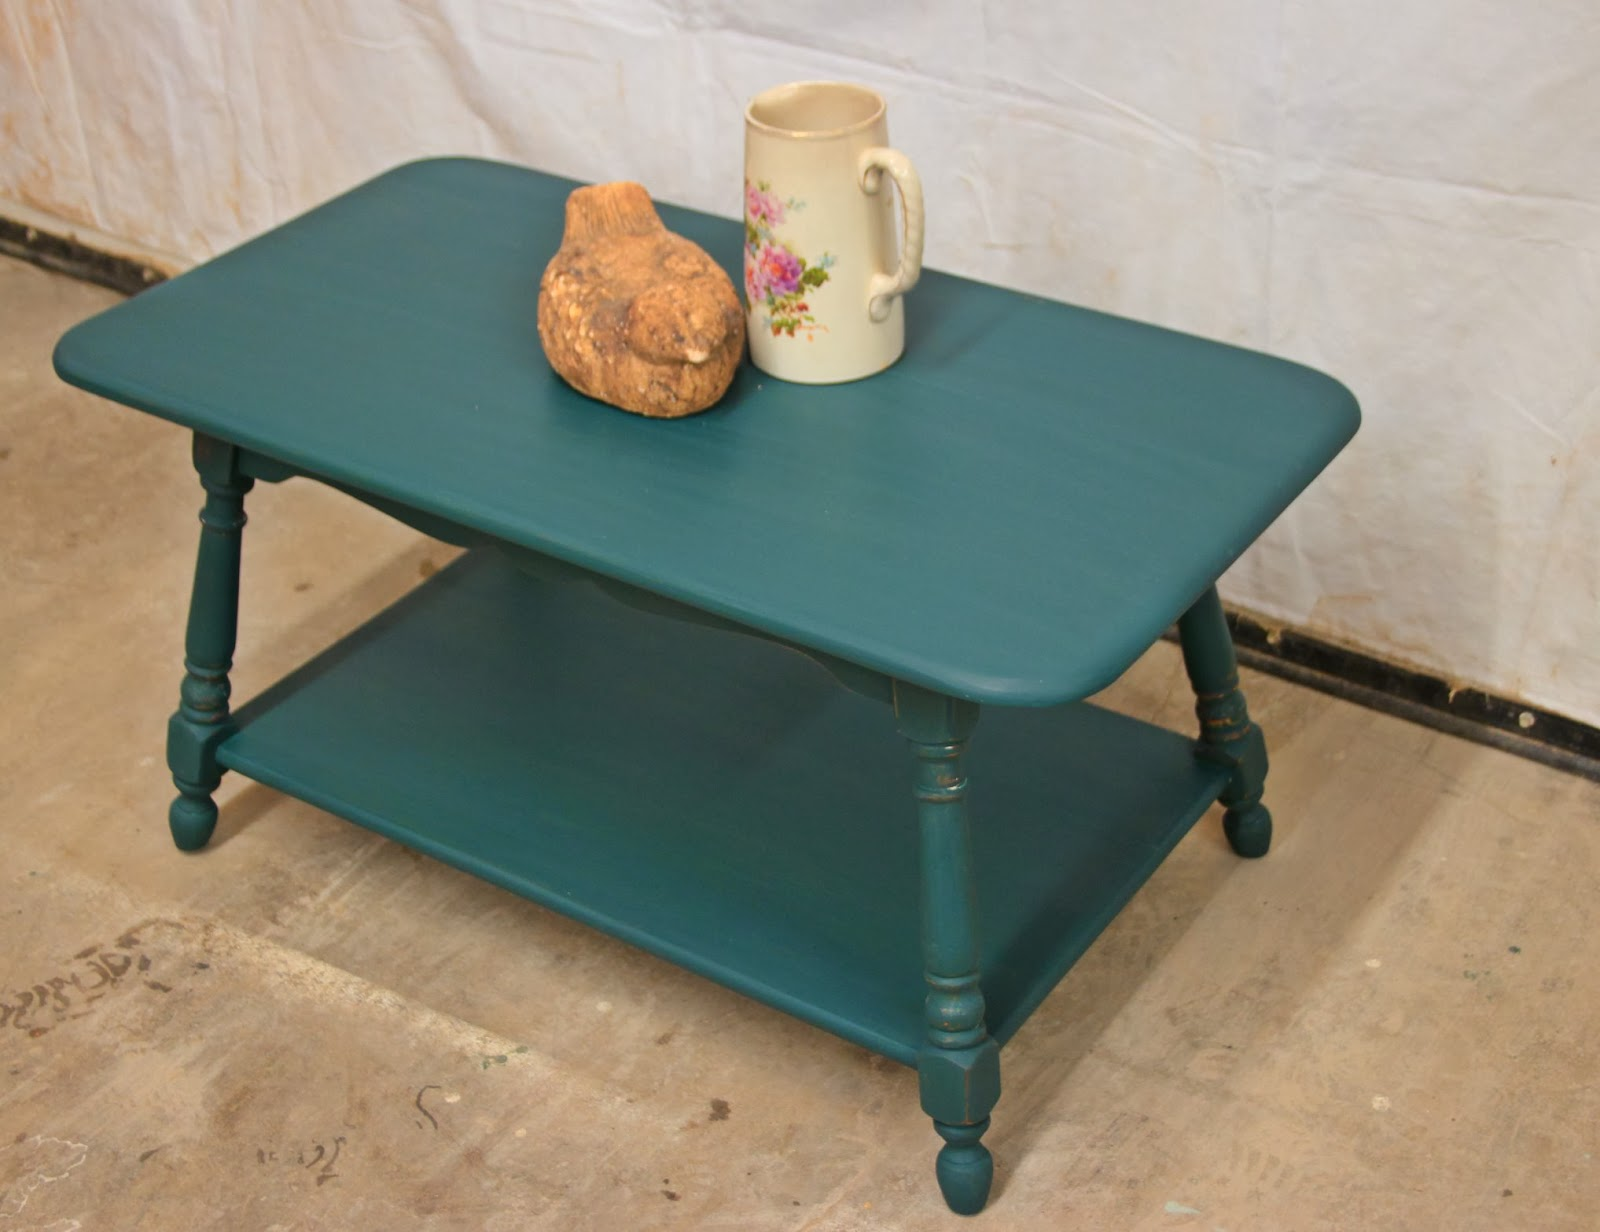 Laurel s Attic Dark Teal Coffee Table SOLD